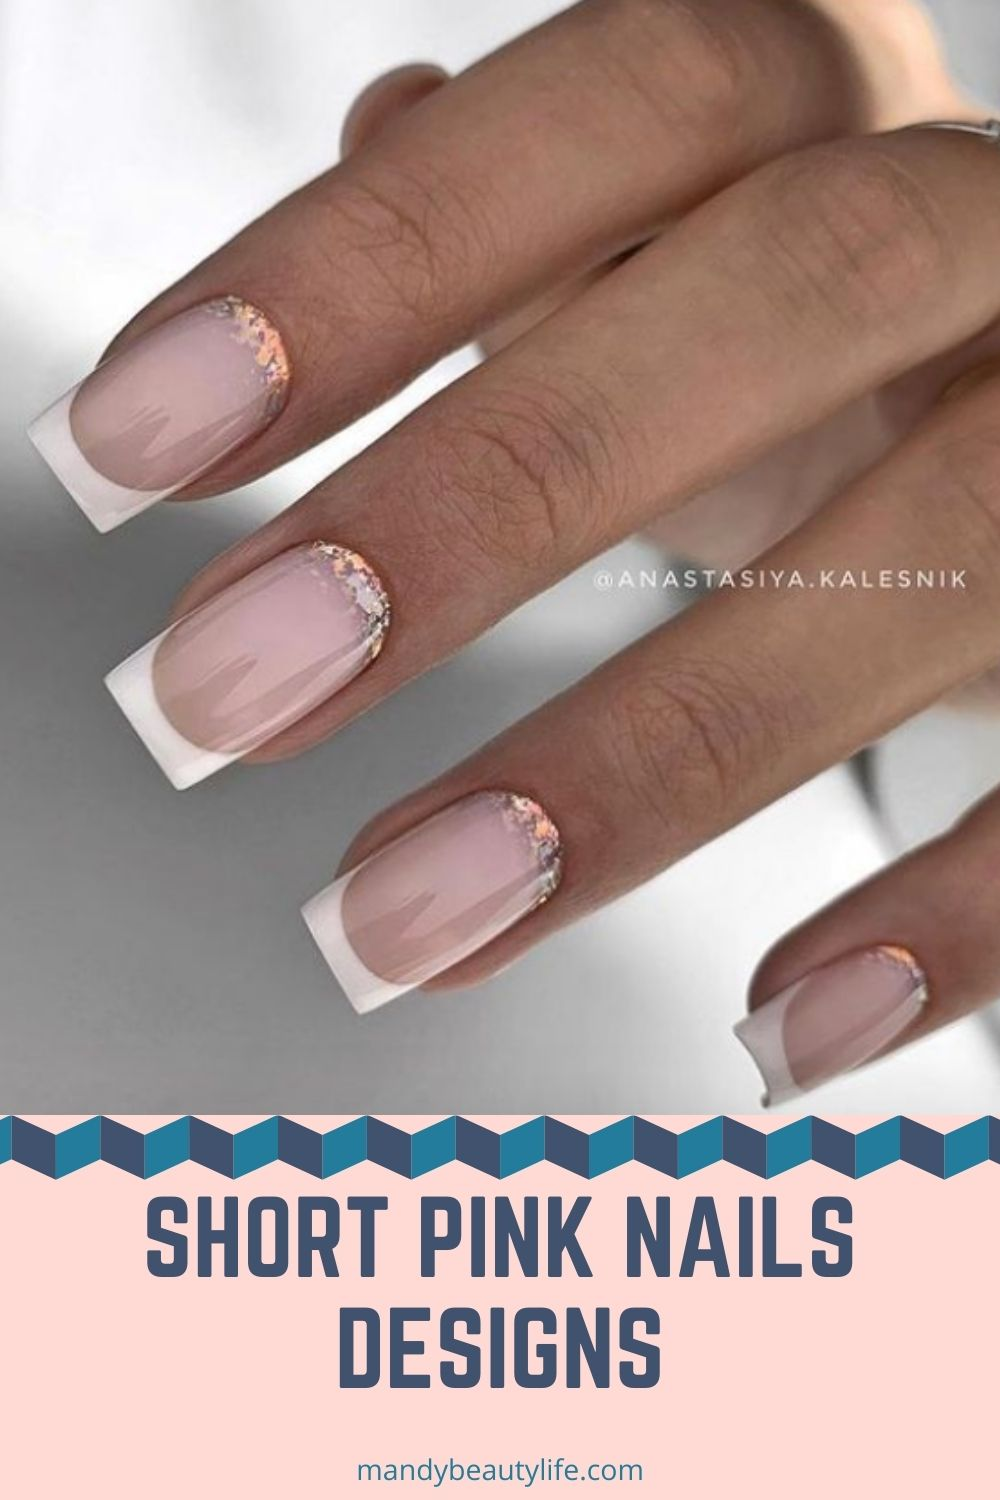 What is short pink nails aesthetic?